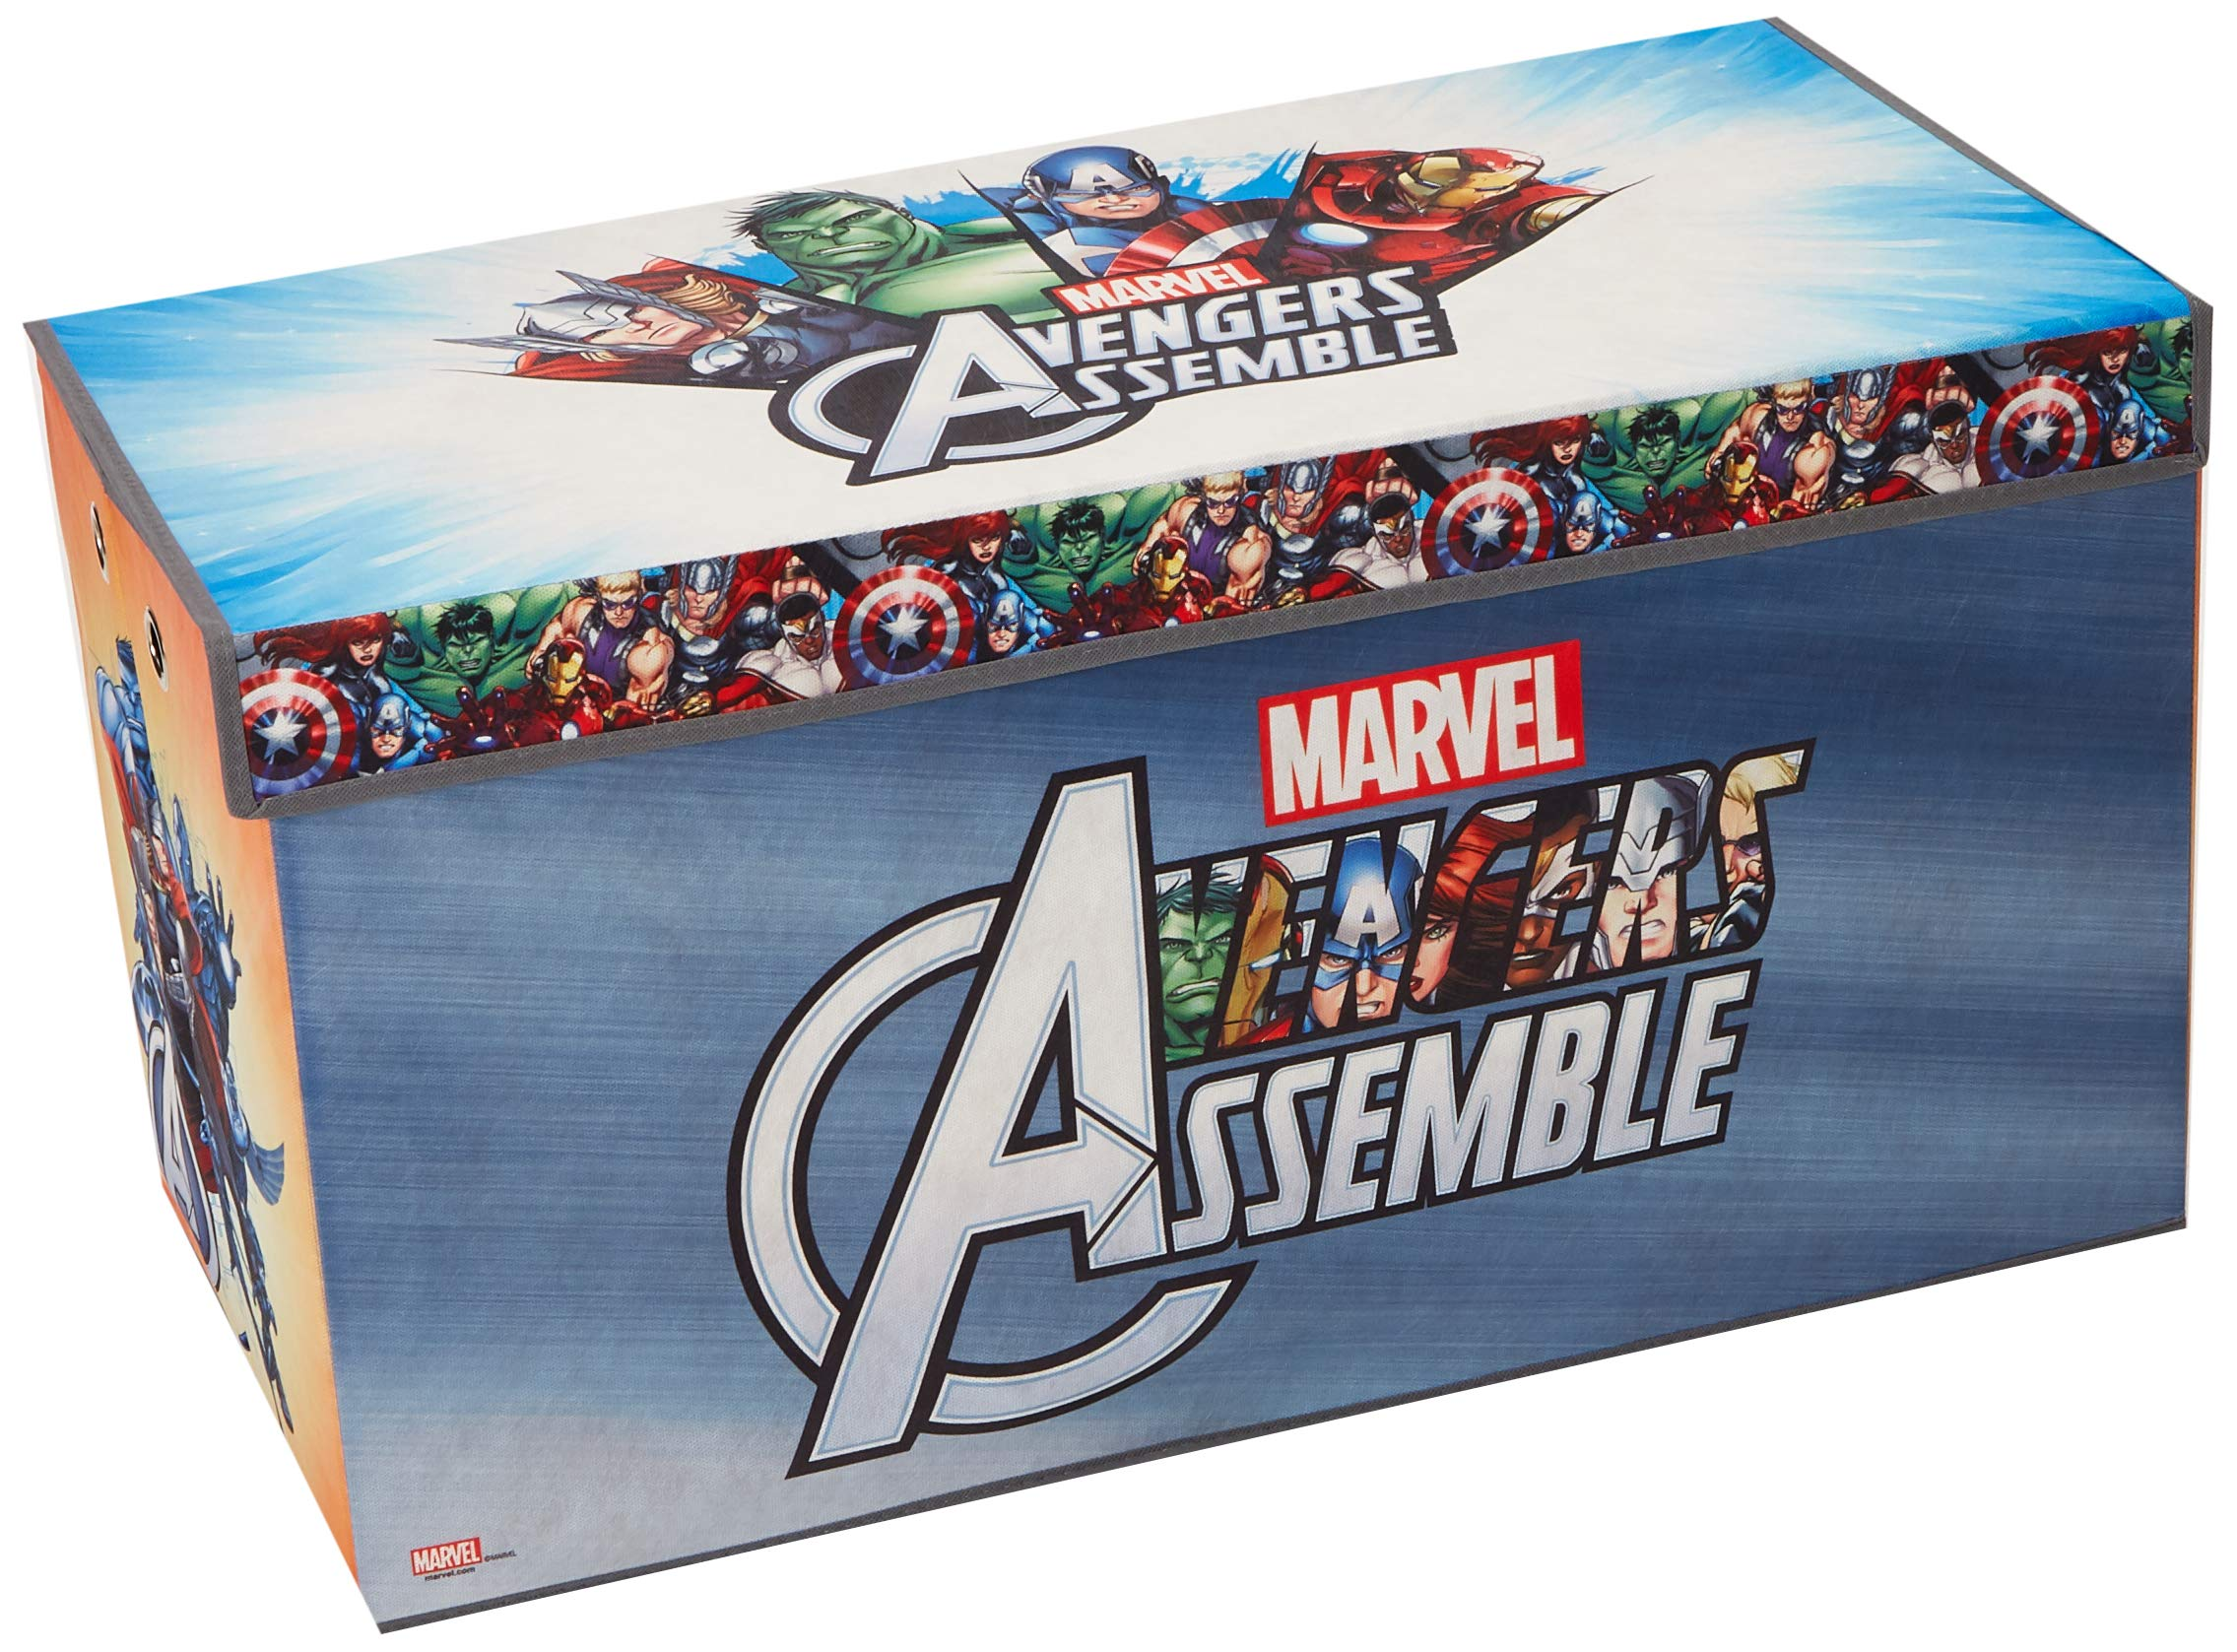 Avengers Folding Soft Storage Bench, Perfect Toy Box or Chest for Playrooms, Officially Licensed Product by Fresh Home Elements